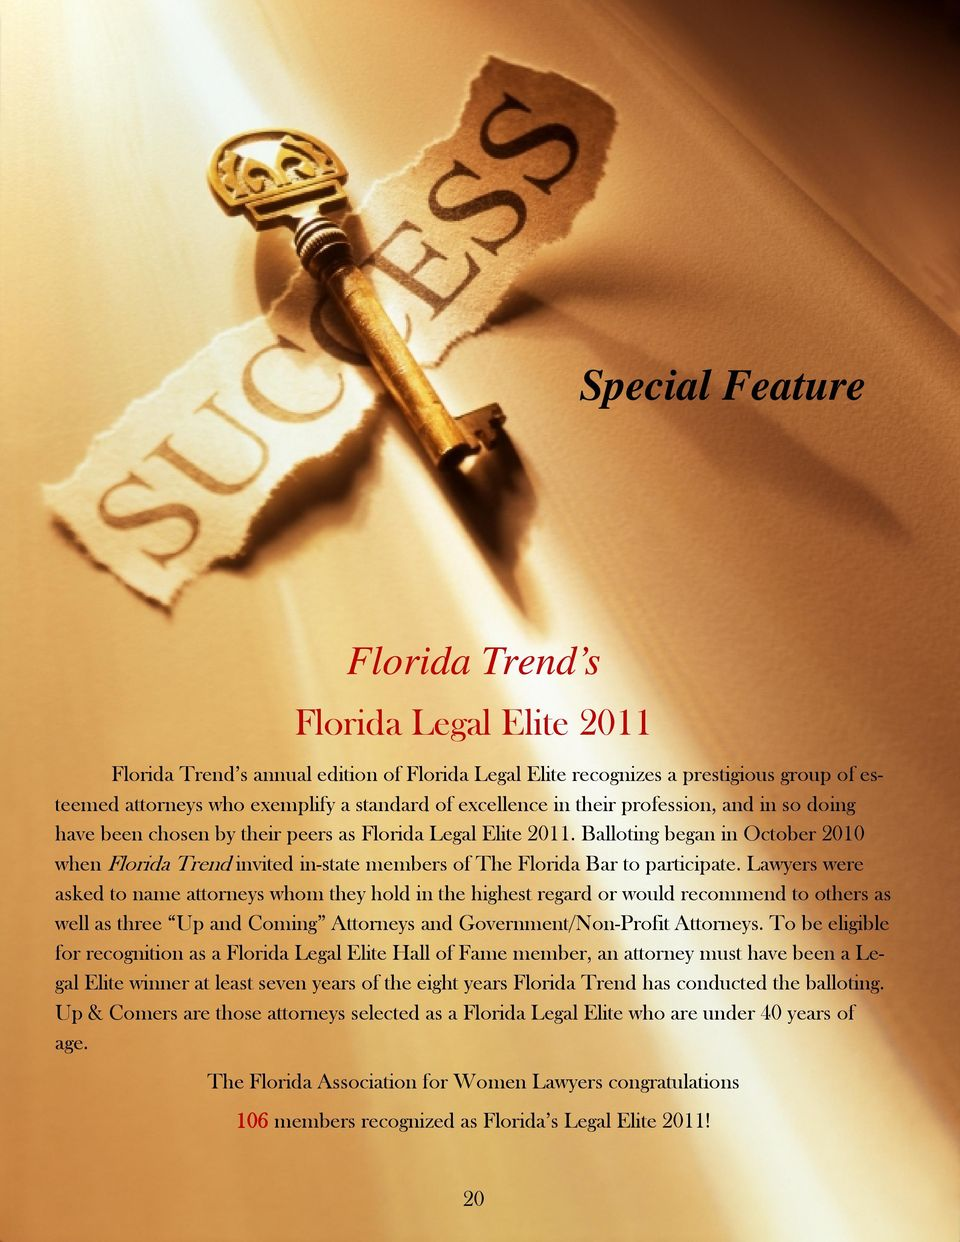 Balloting began in October 2010 when Florida Trend invited in-state members of The Florida Bar to participate.